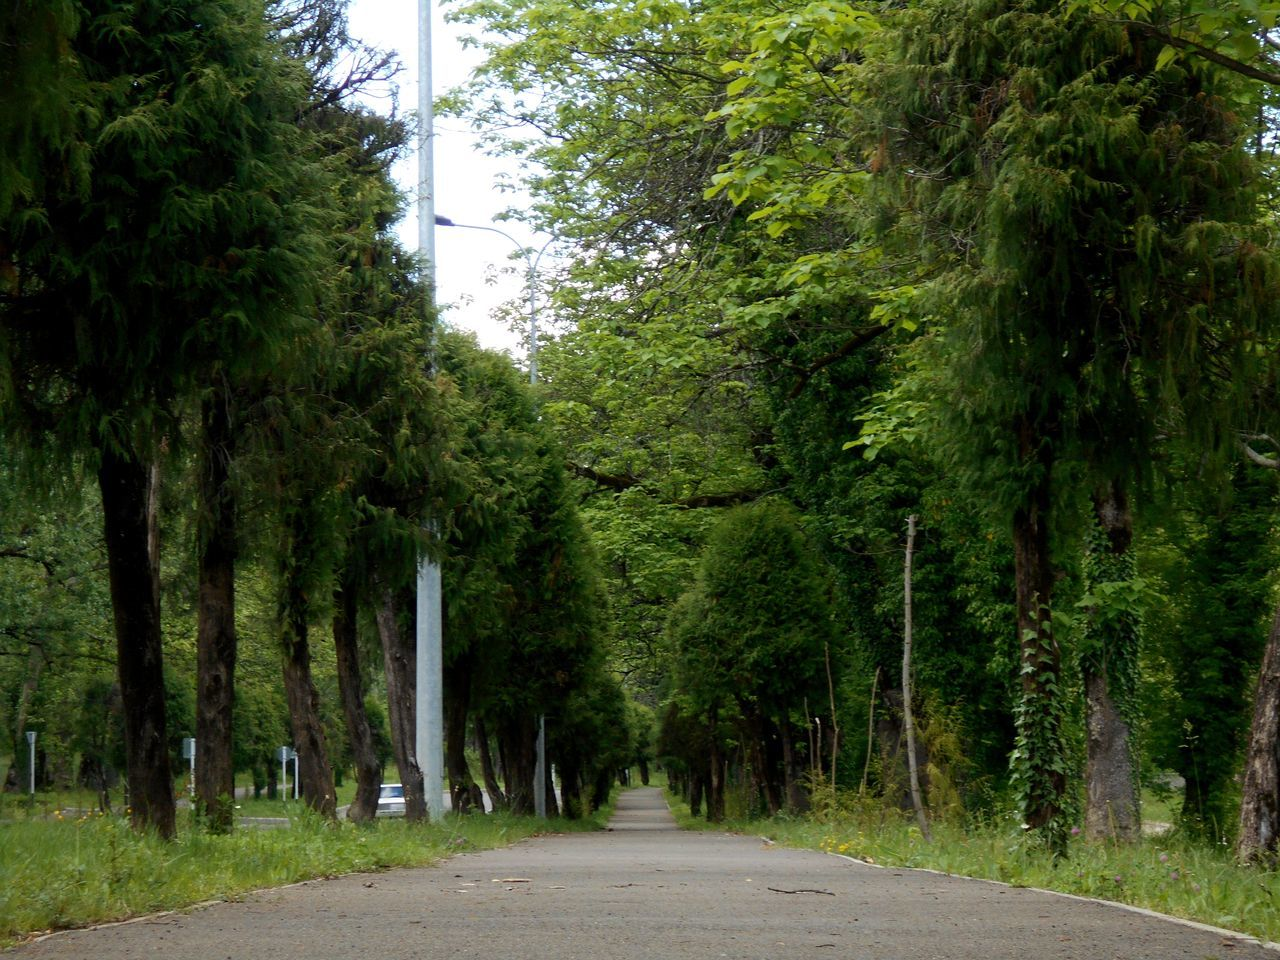 tree, road, nature, no people, forest, day, green color, growth, the way forward, outdoors, scenics, beauty in nature